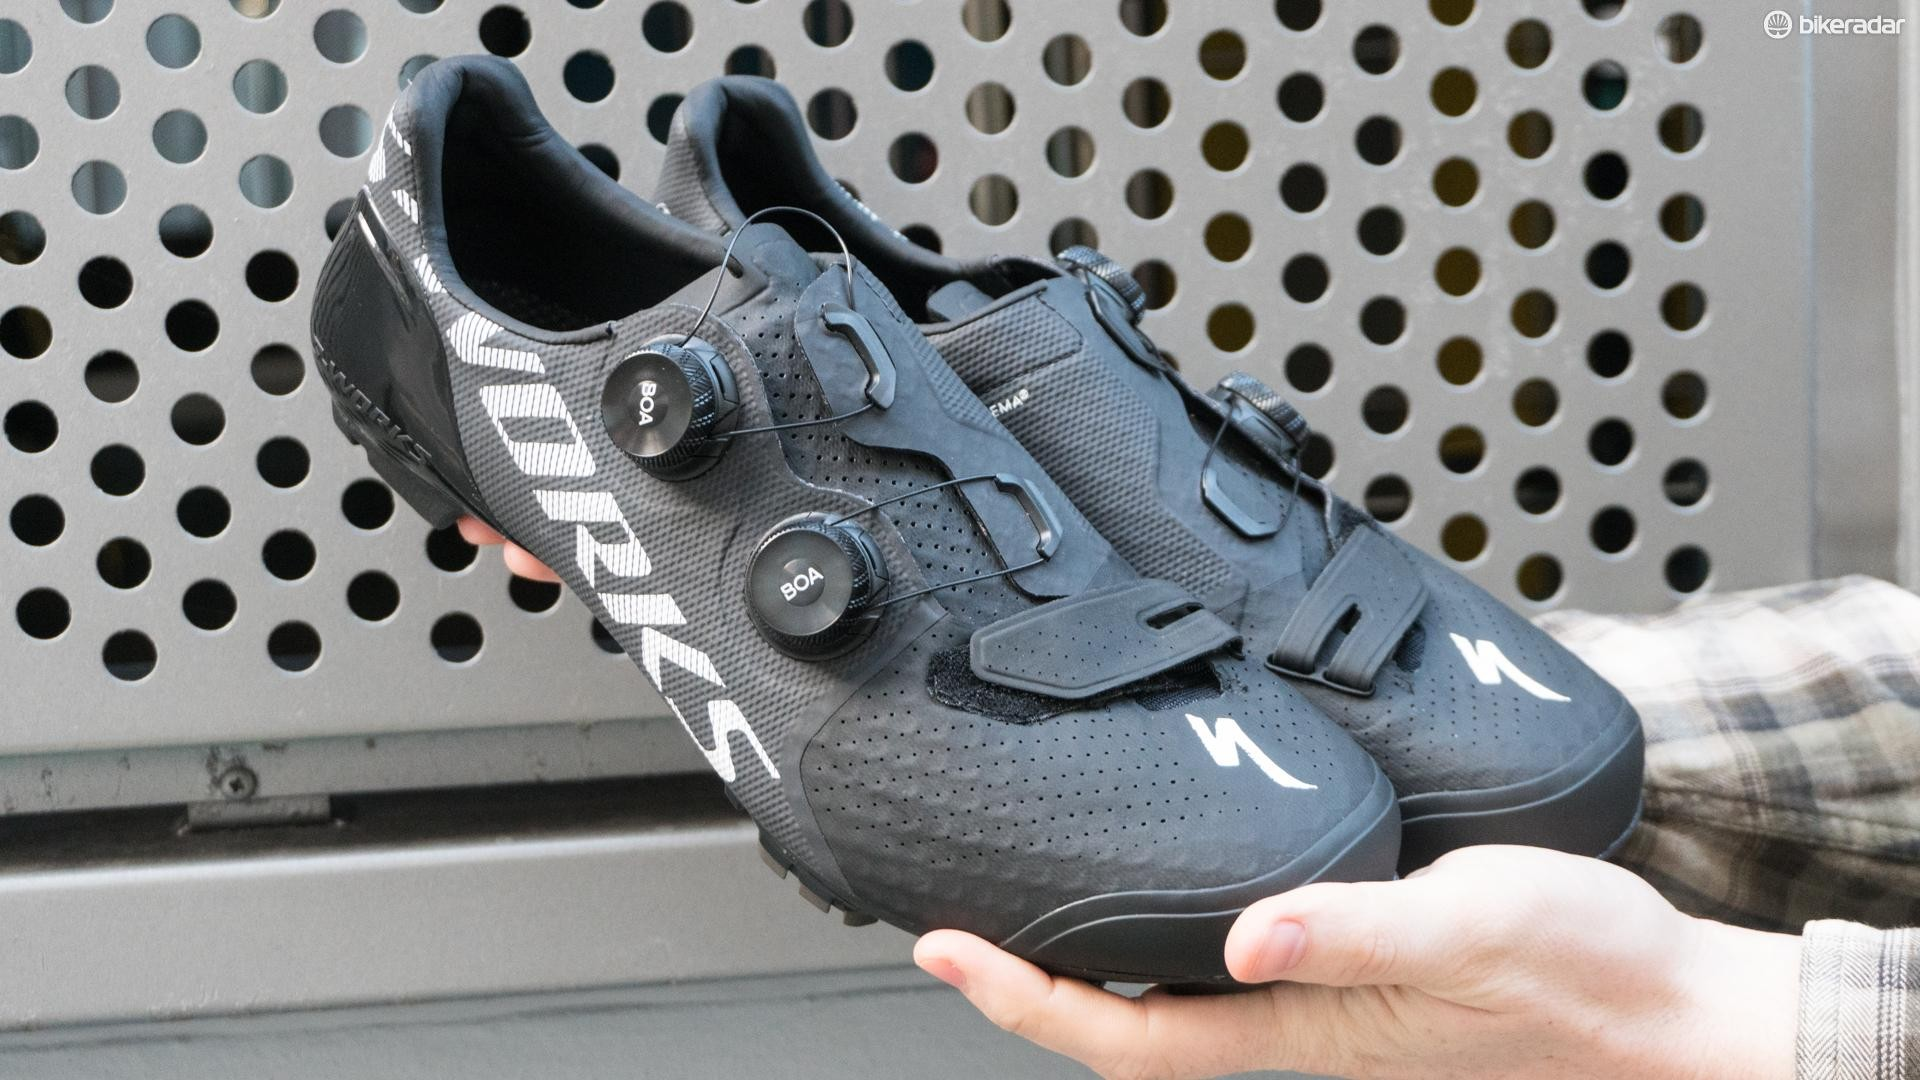 The S-Works Recon is Specialized's latest and greatest off-road shoe